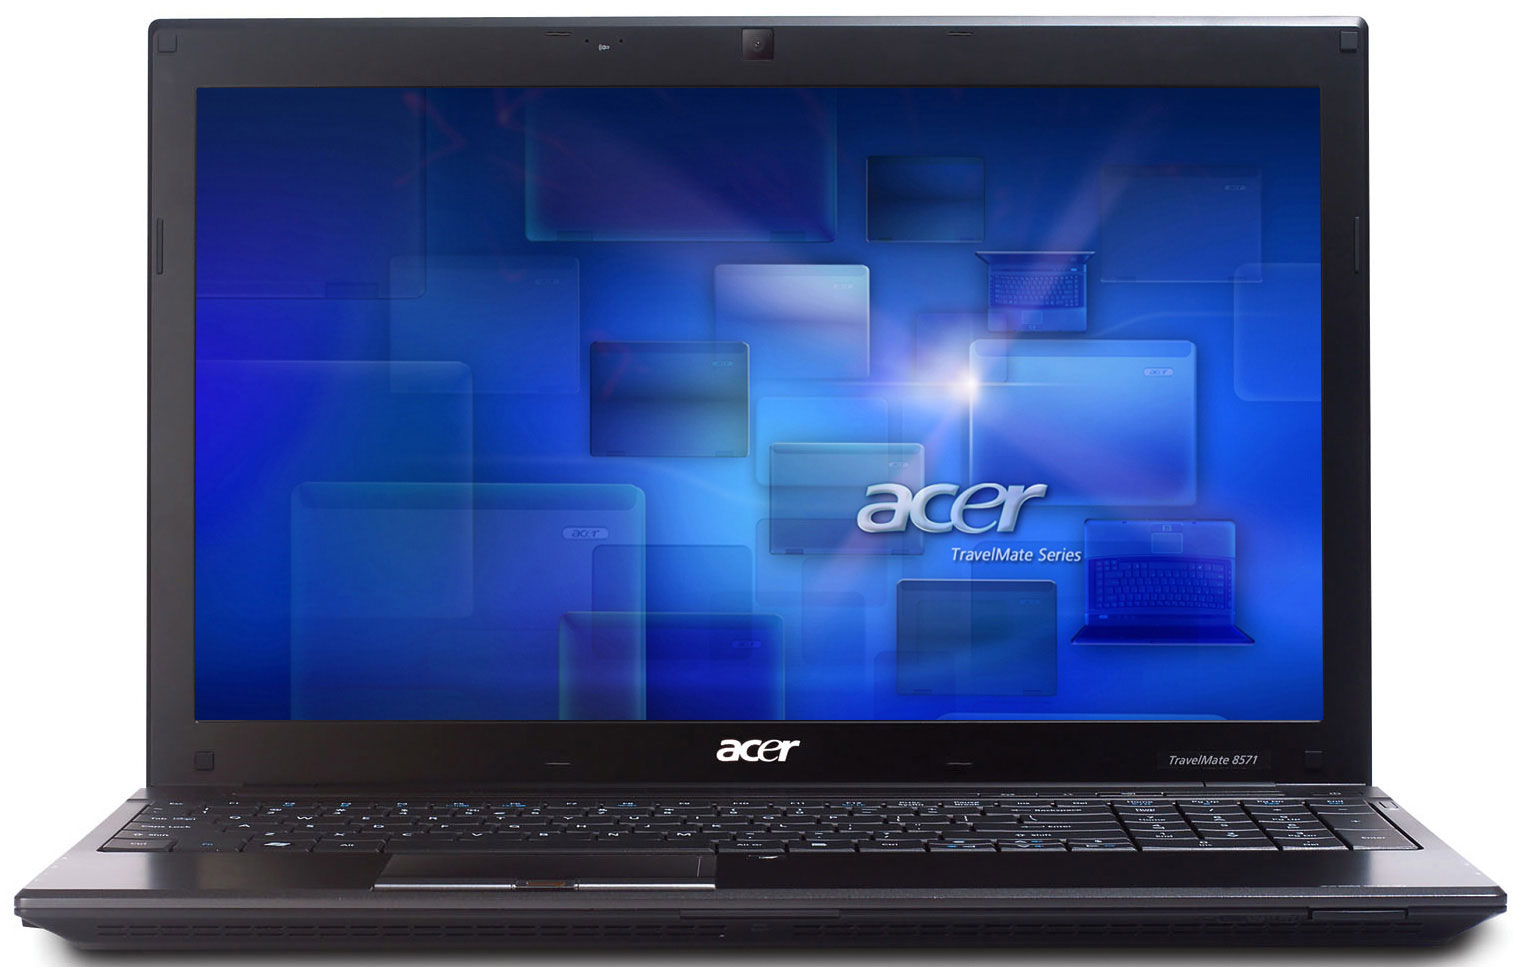 ACER TRAVELMATE 2420 WIRELESS LAN DRIVER WINDOWS 7